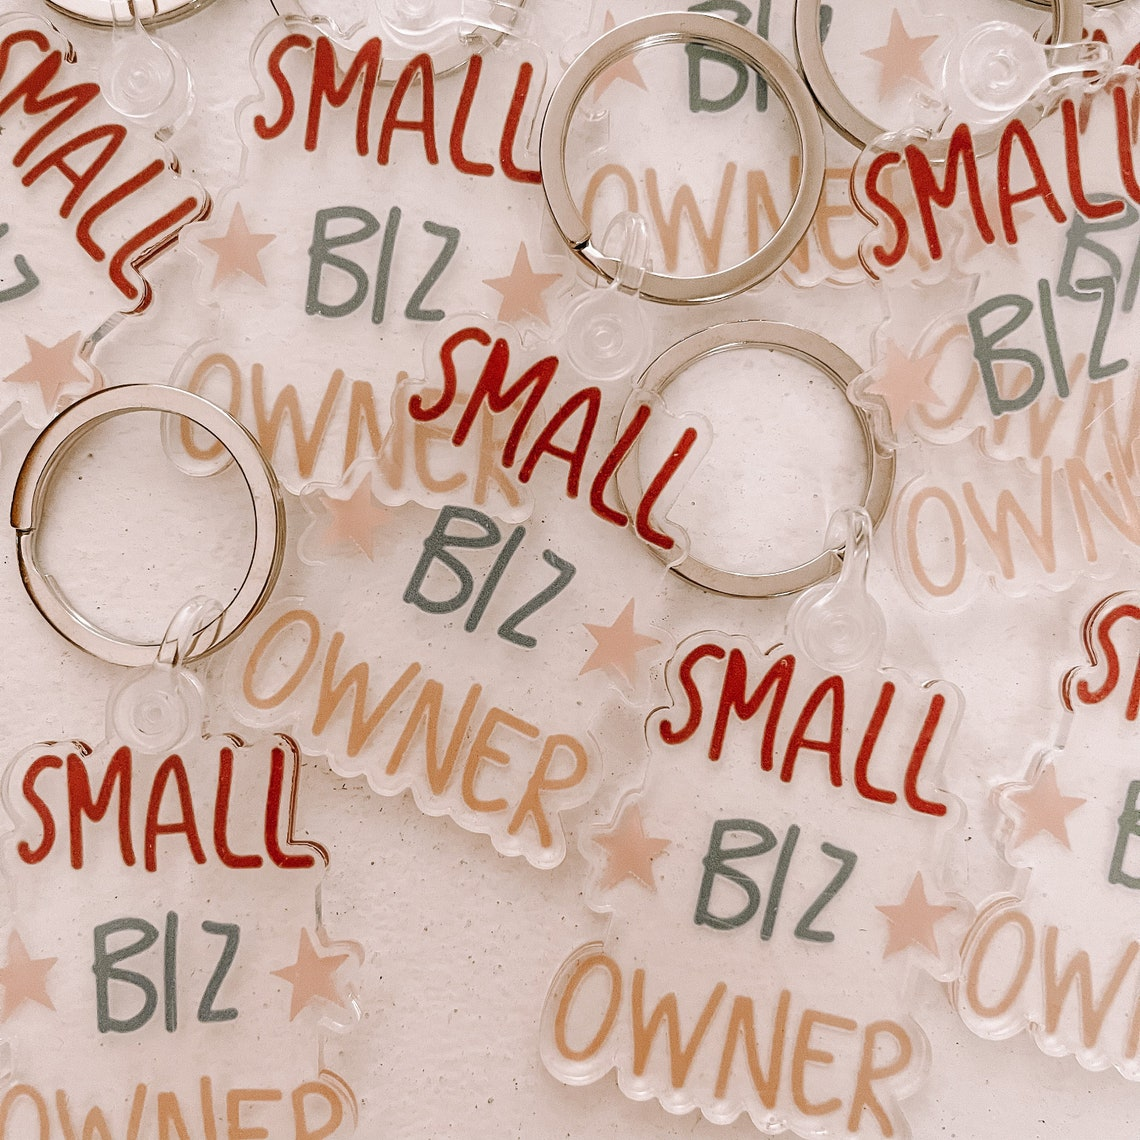 Clear Small Biz Owner Keychain image 0